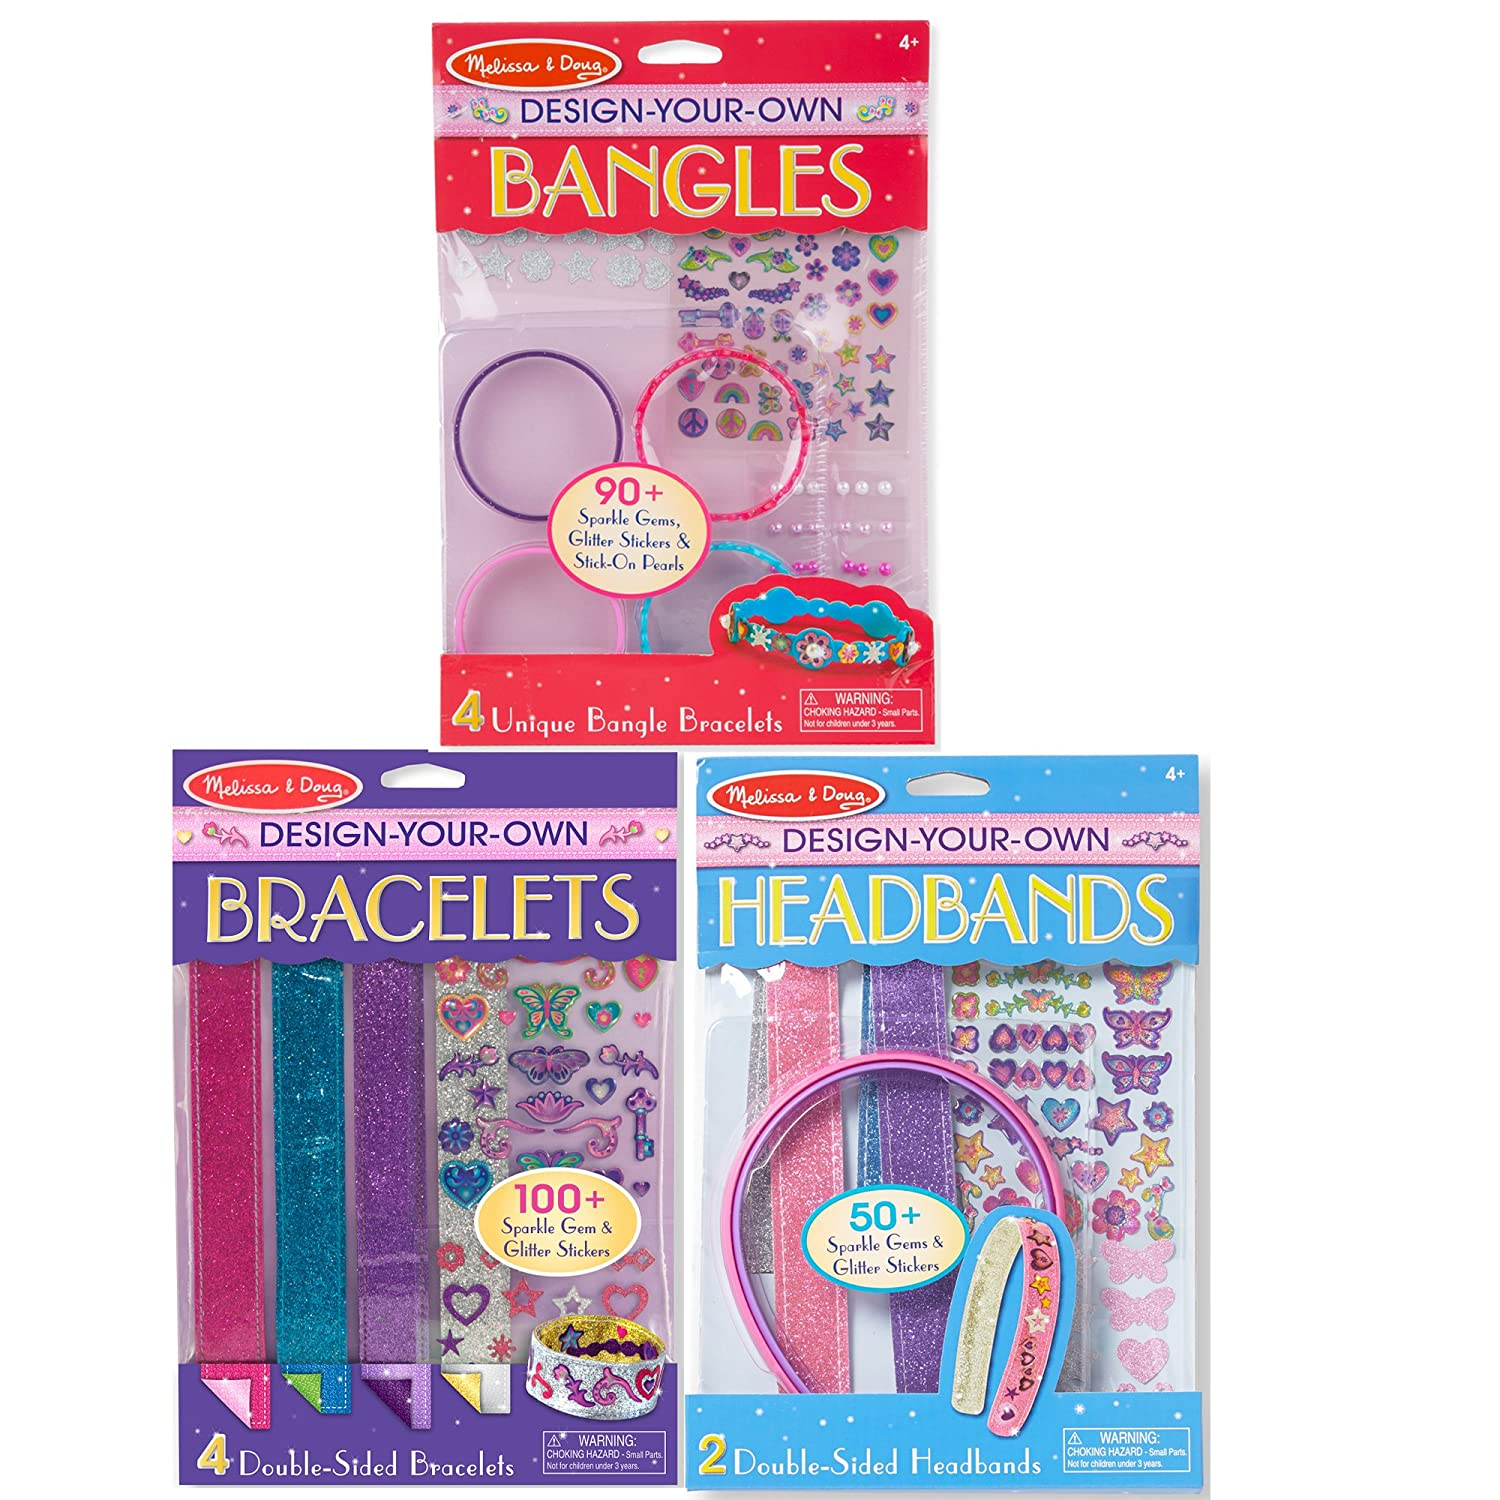 Melissa /& Doug Design-Your-Own Jewelry-Making Kits Headbands and Bracelets 8108 Bangles